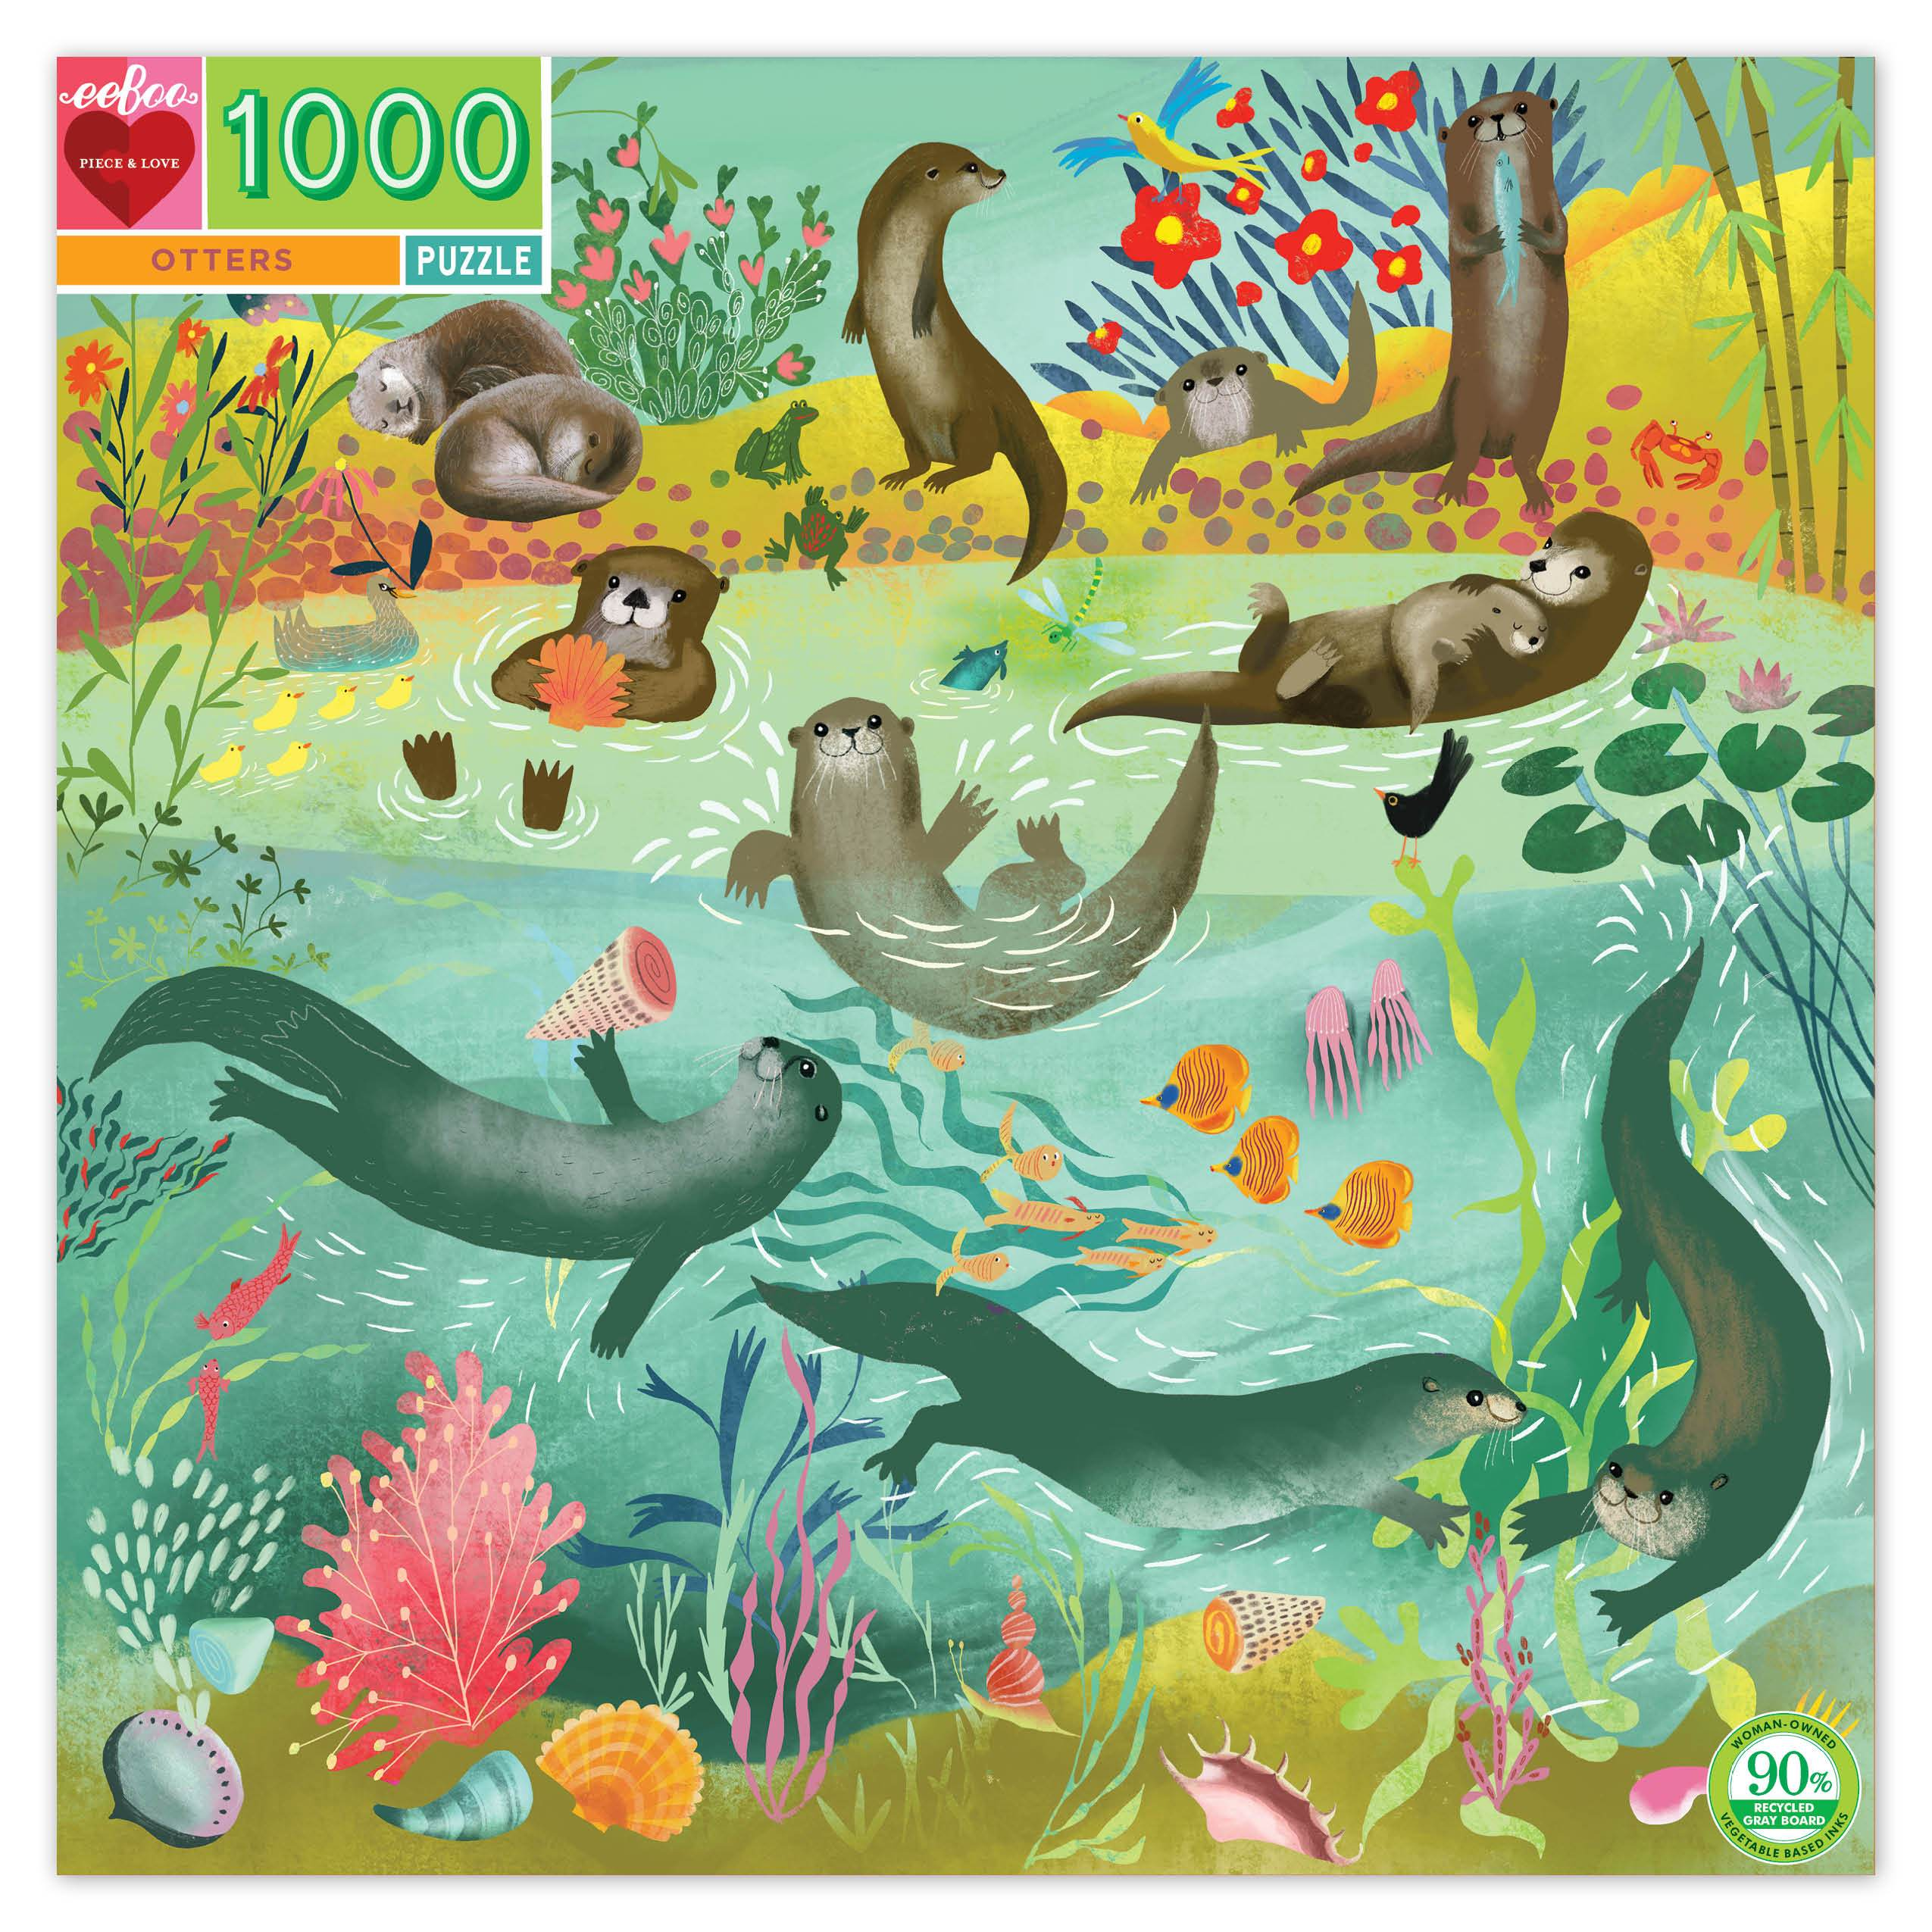 NEW! Otters Puzzle